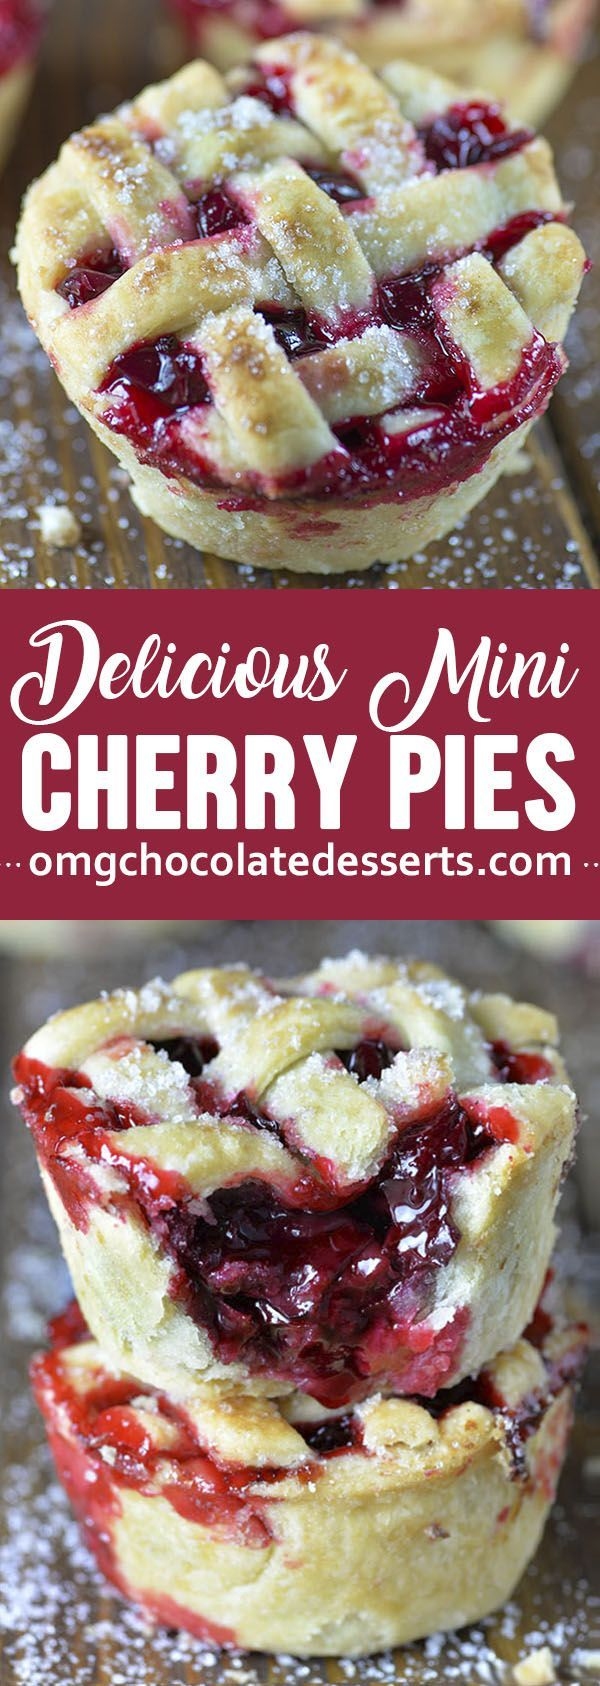 Cherry Pies These mini cherry pies are baked in a muffin tin so they're easy to make and even easier to take to a party, potluck, or picnic.These mini cherry pies are baked in a muffin tin so they're easy to make and even easier to take to a party, potluck, or picnic.